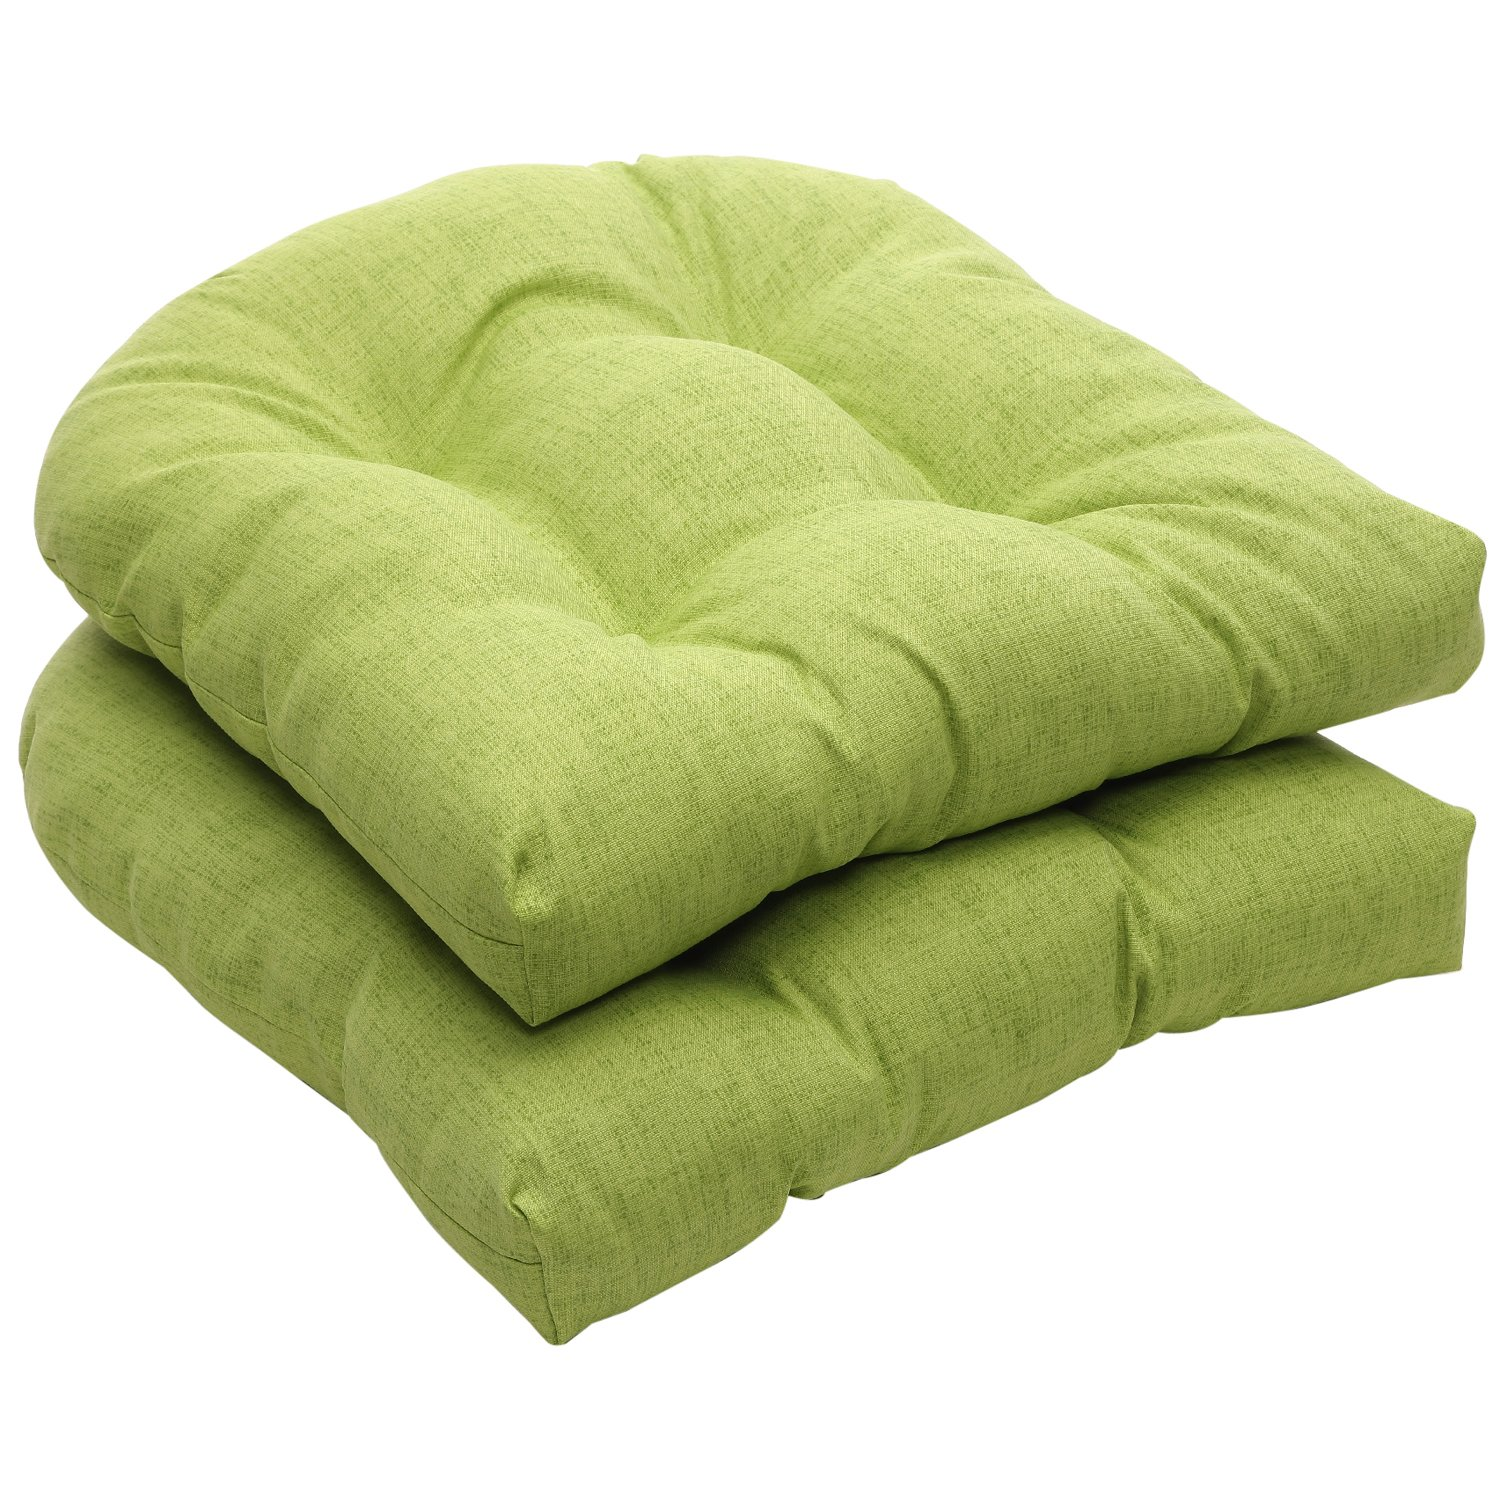 outdoor green textured solid wicker seat cushions 2 pack ebay